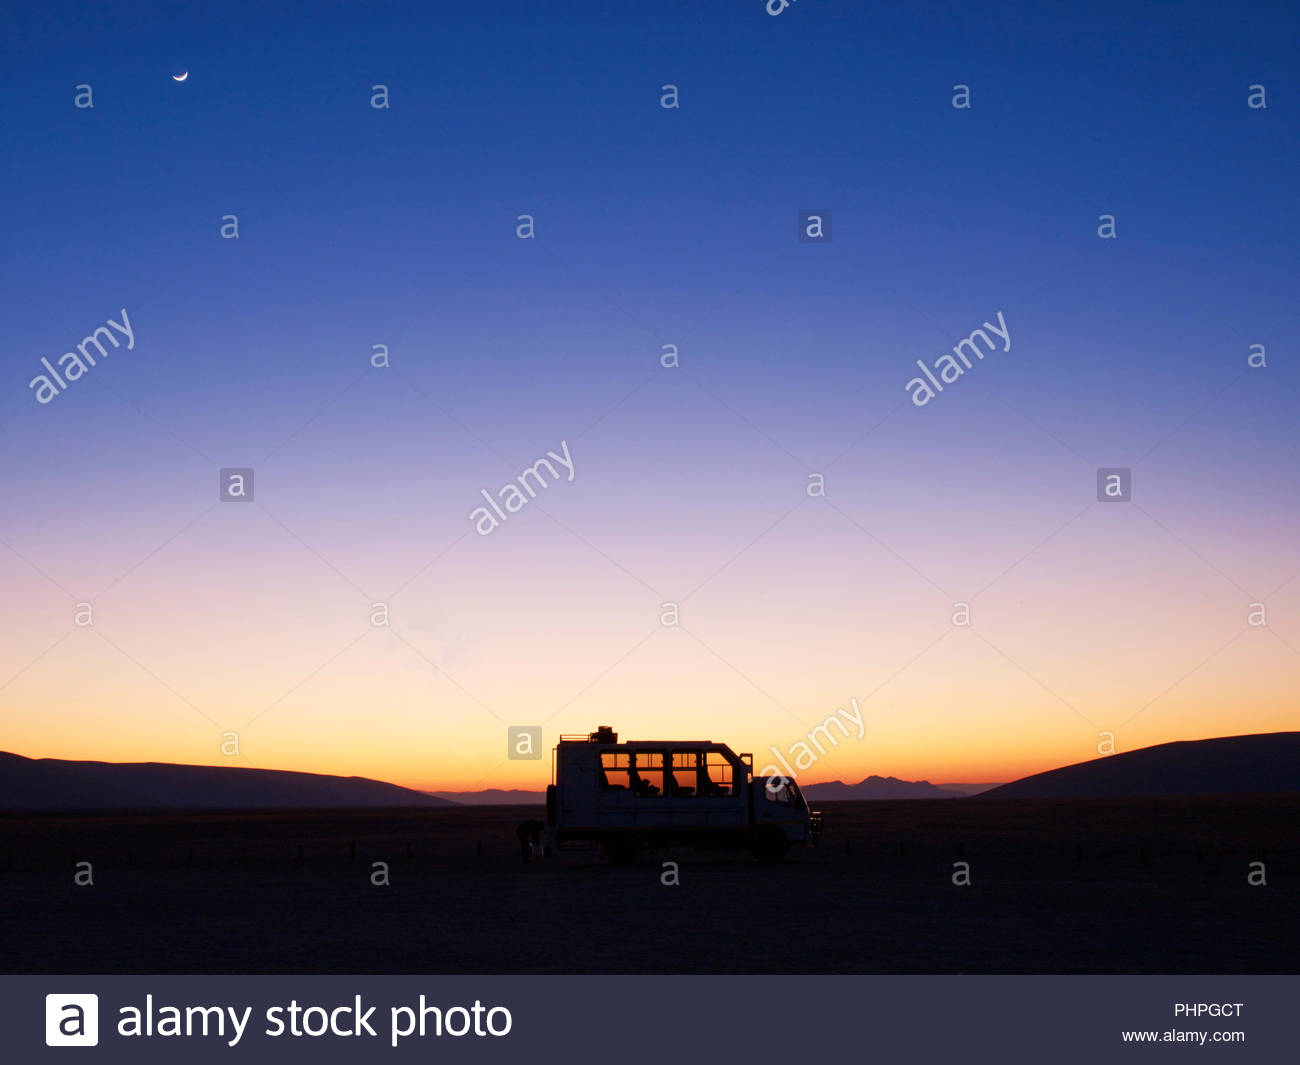 Tour bus in desert at sunset - Stock Image